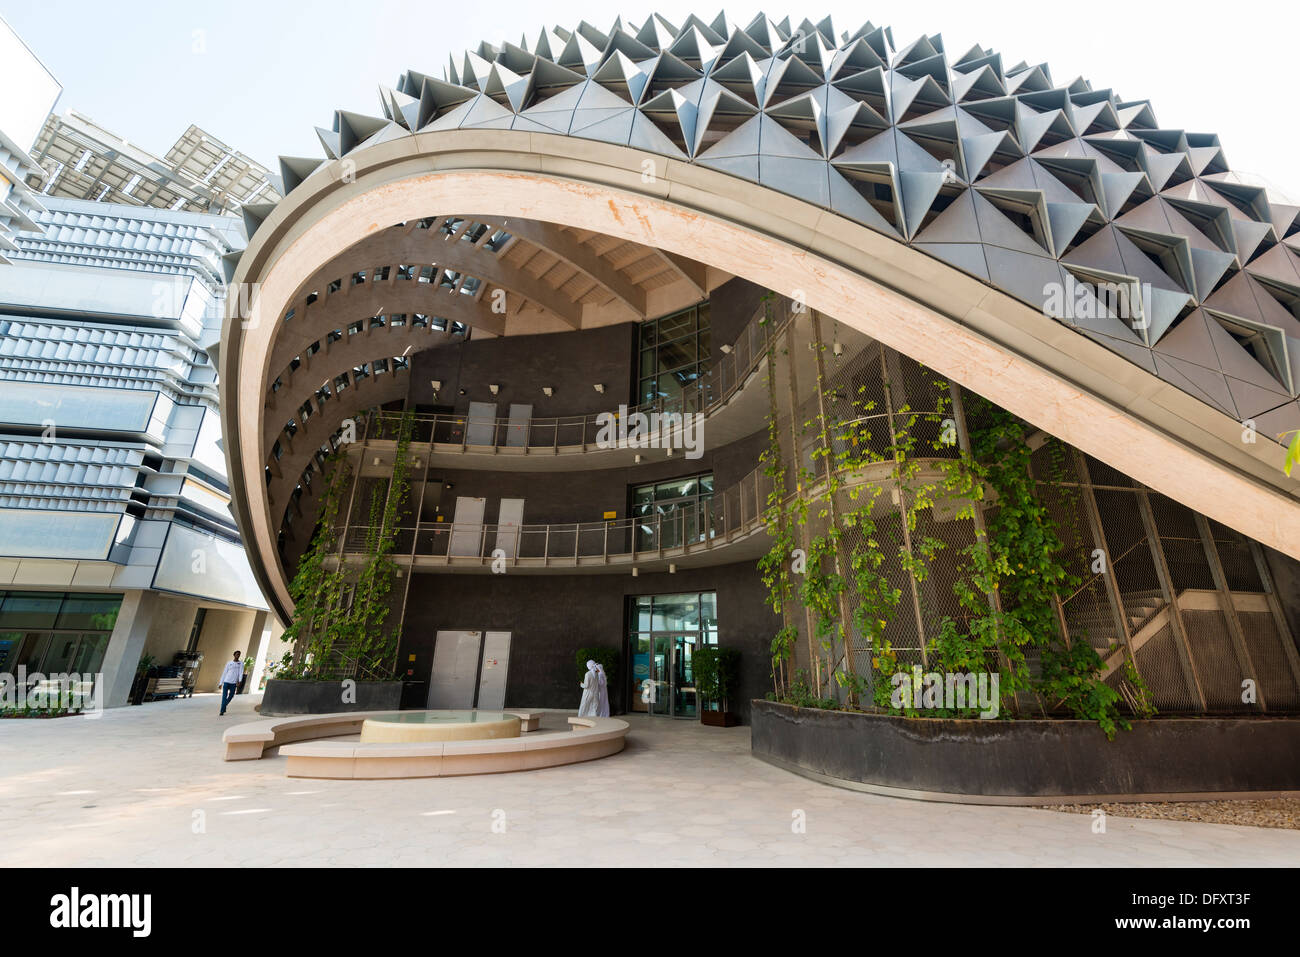 Institute Of Science And Technology At Masdar City In Abu